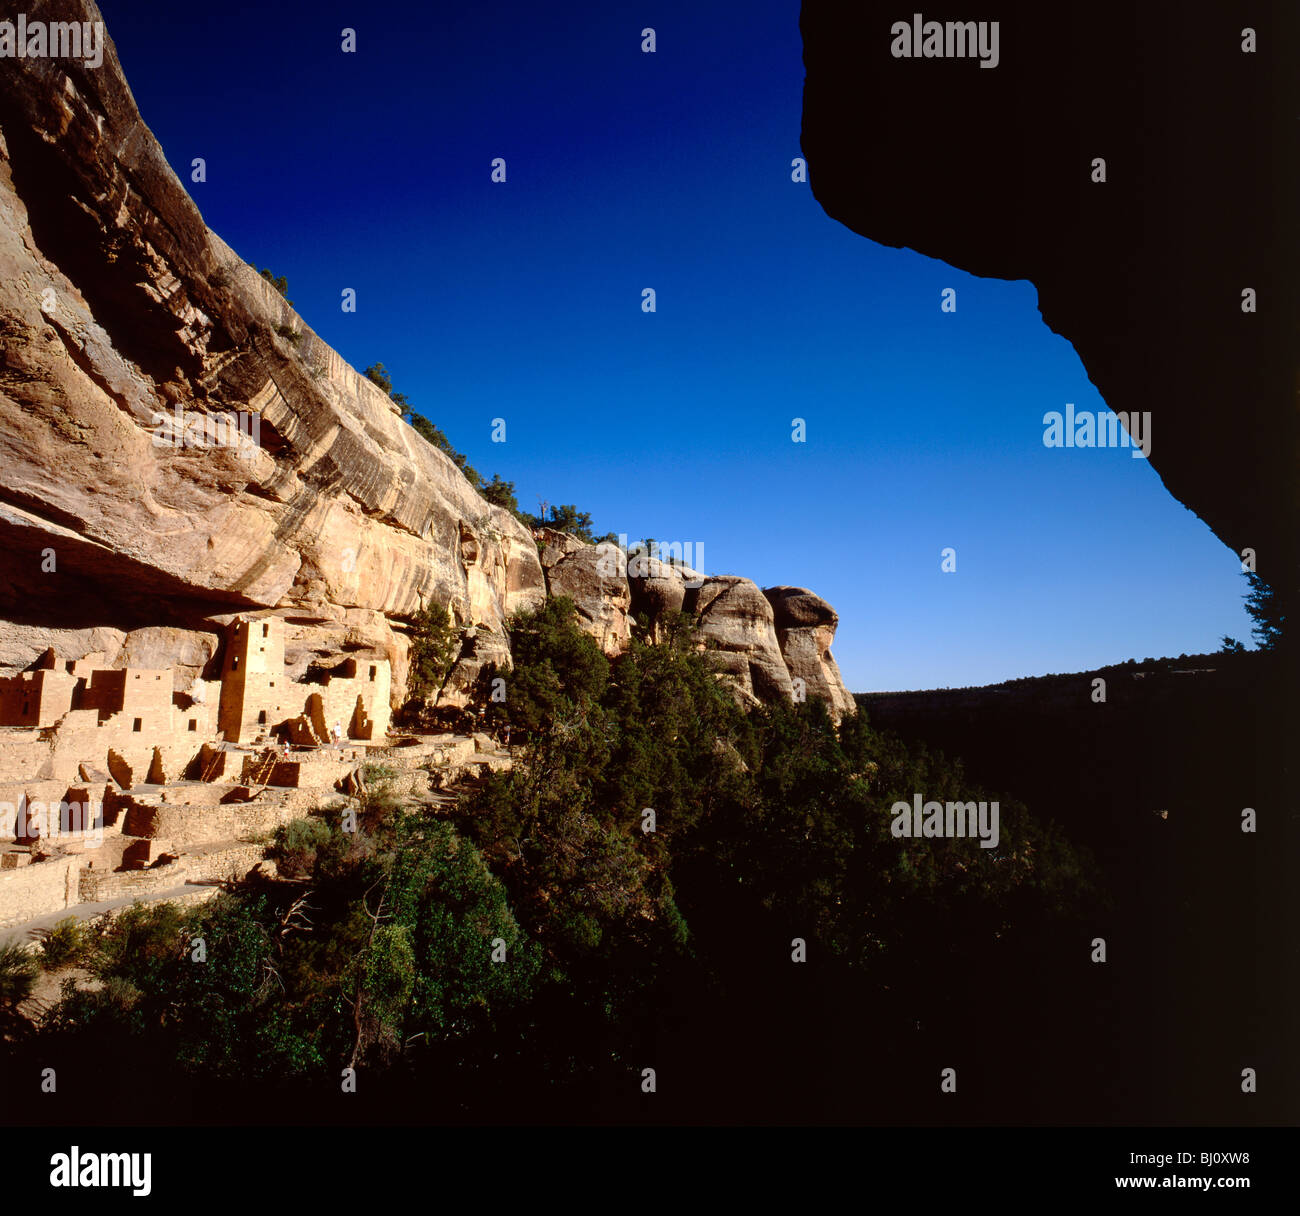 Cliff Palace, largest Anasazi cliff dwelling (c1200 AD), Mesa Verde National Park, Colorado, USA - Stock Image